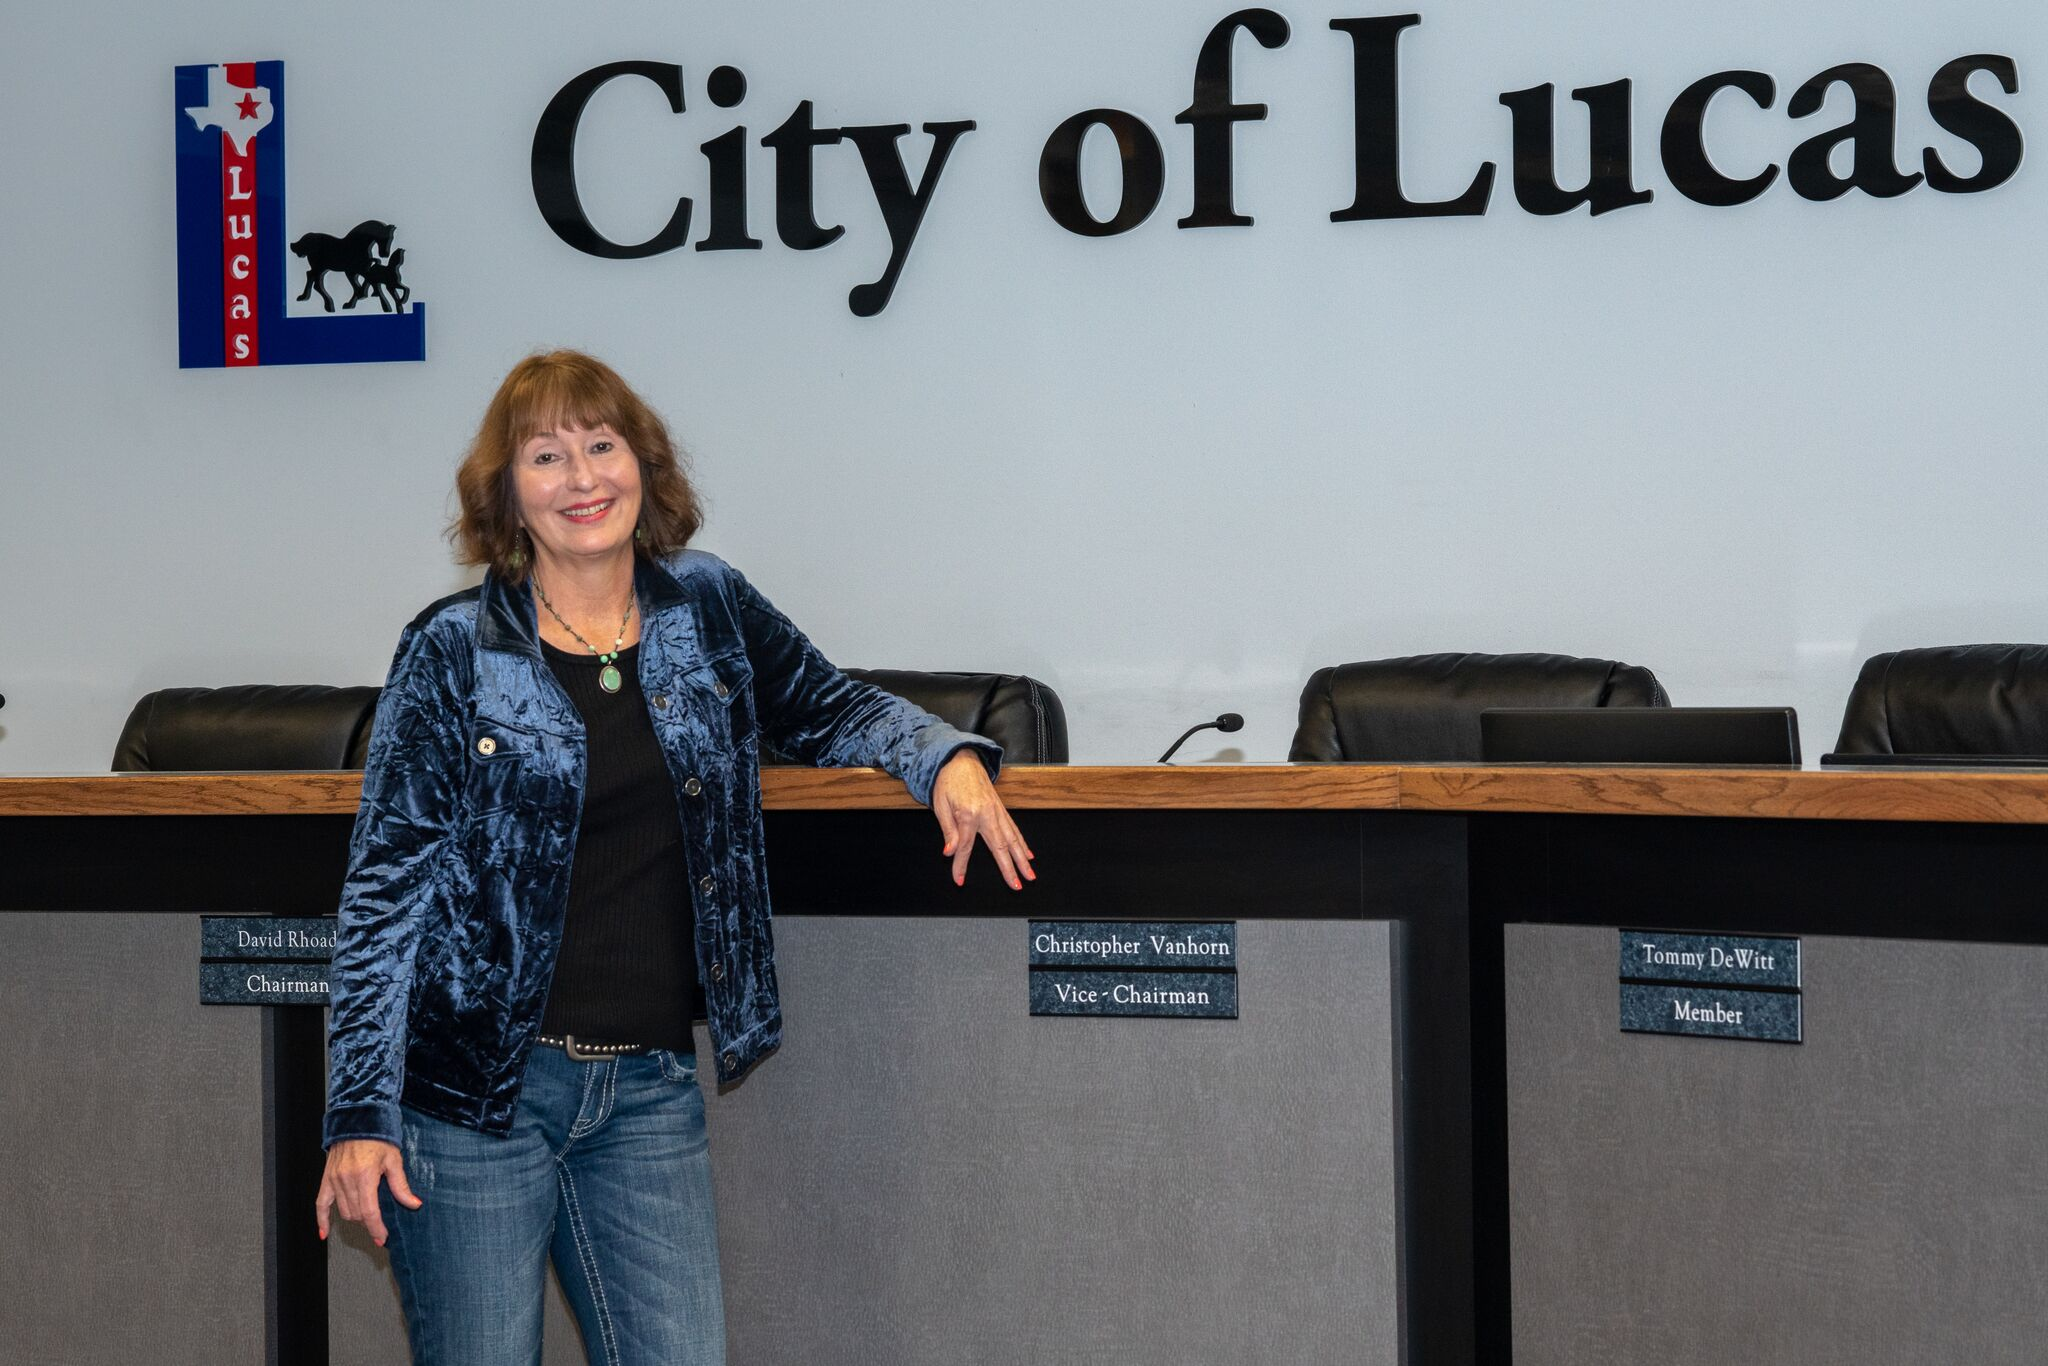 : Joni Clarke, City Manager of Lucas since 2014, in Council Chambers.